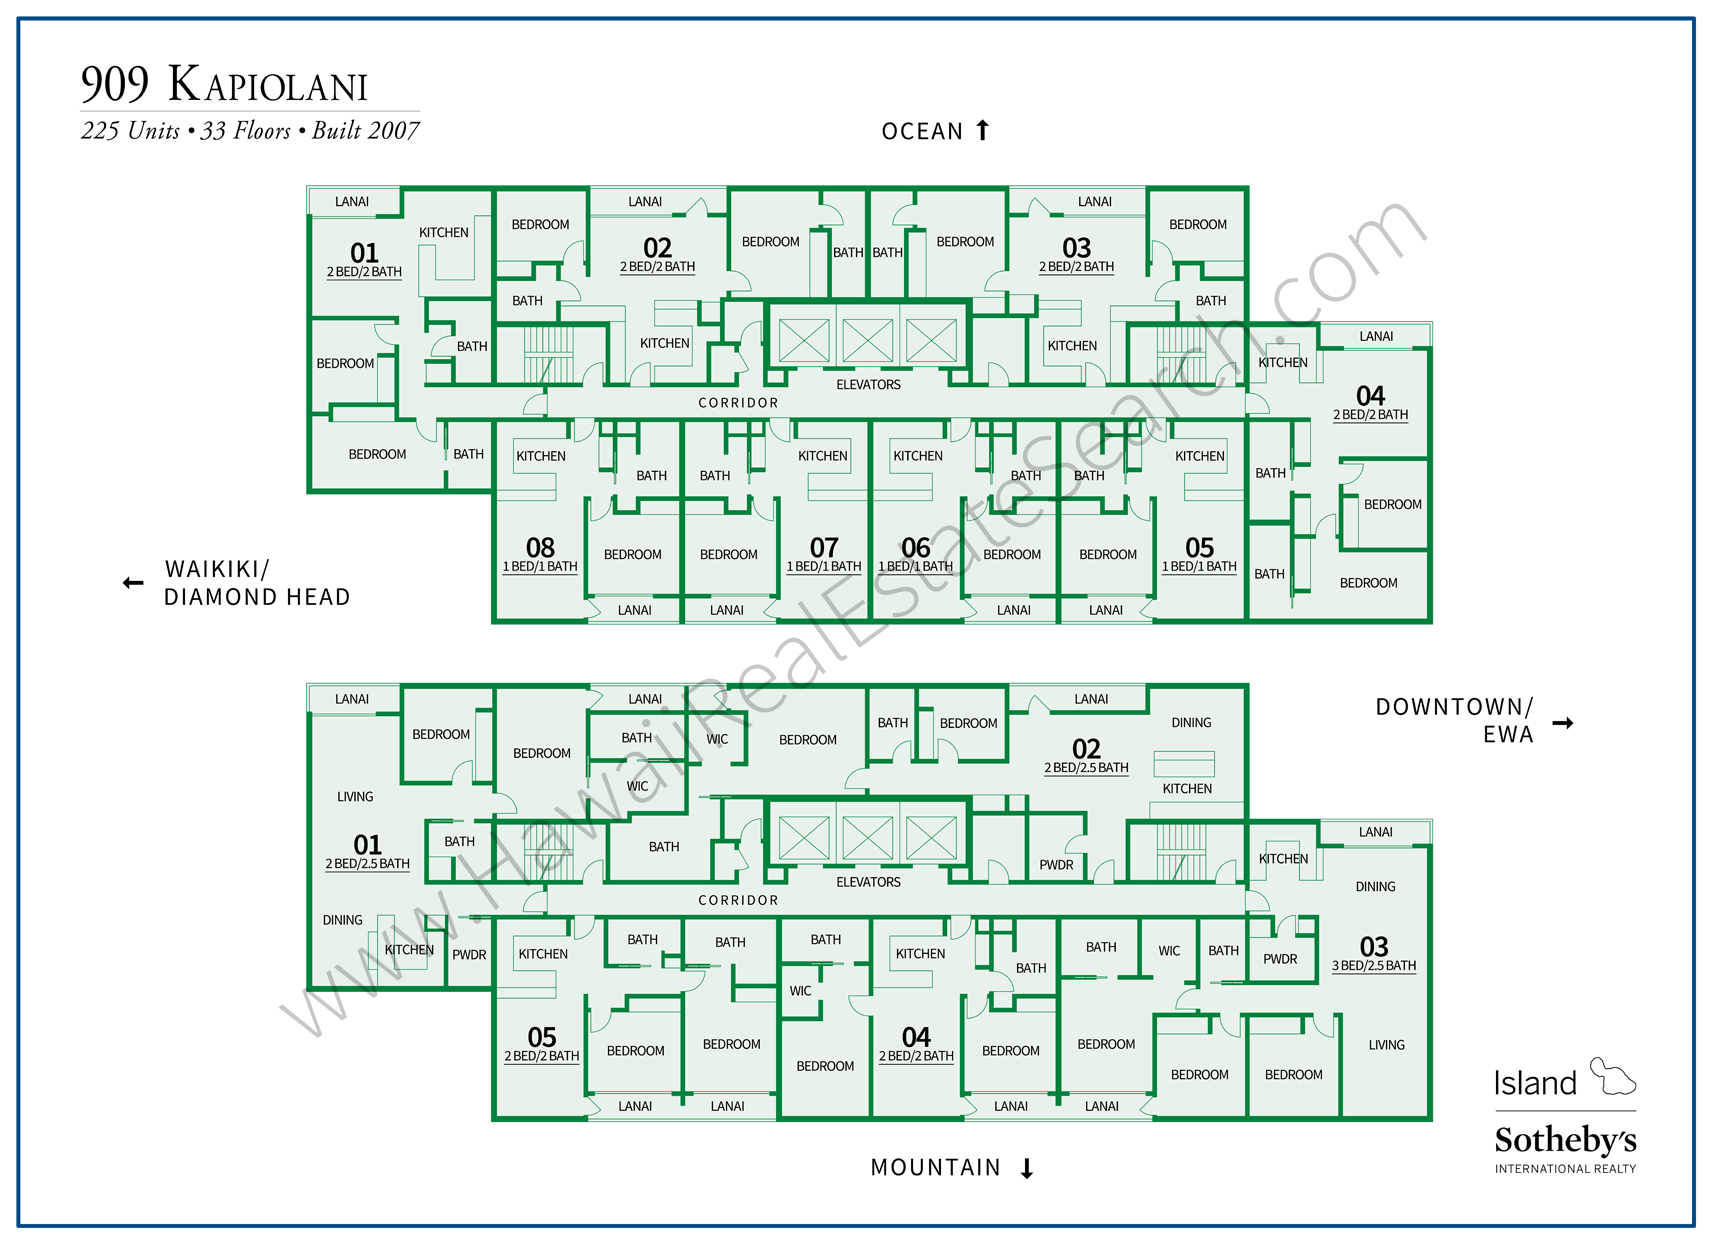 909 Kapiolani Map